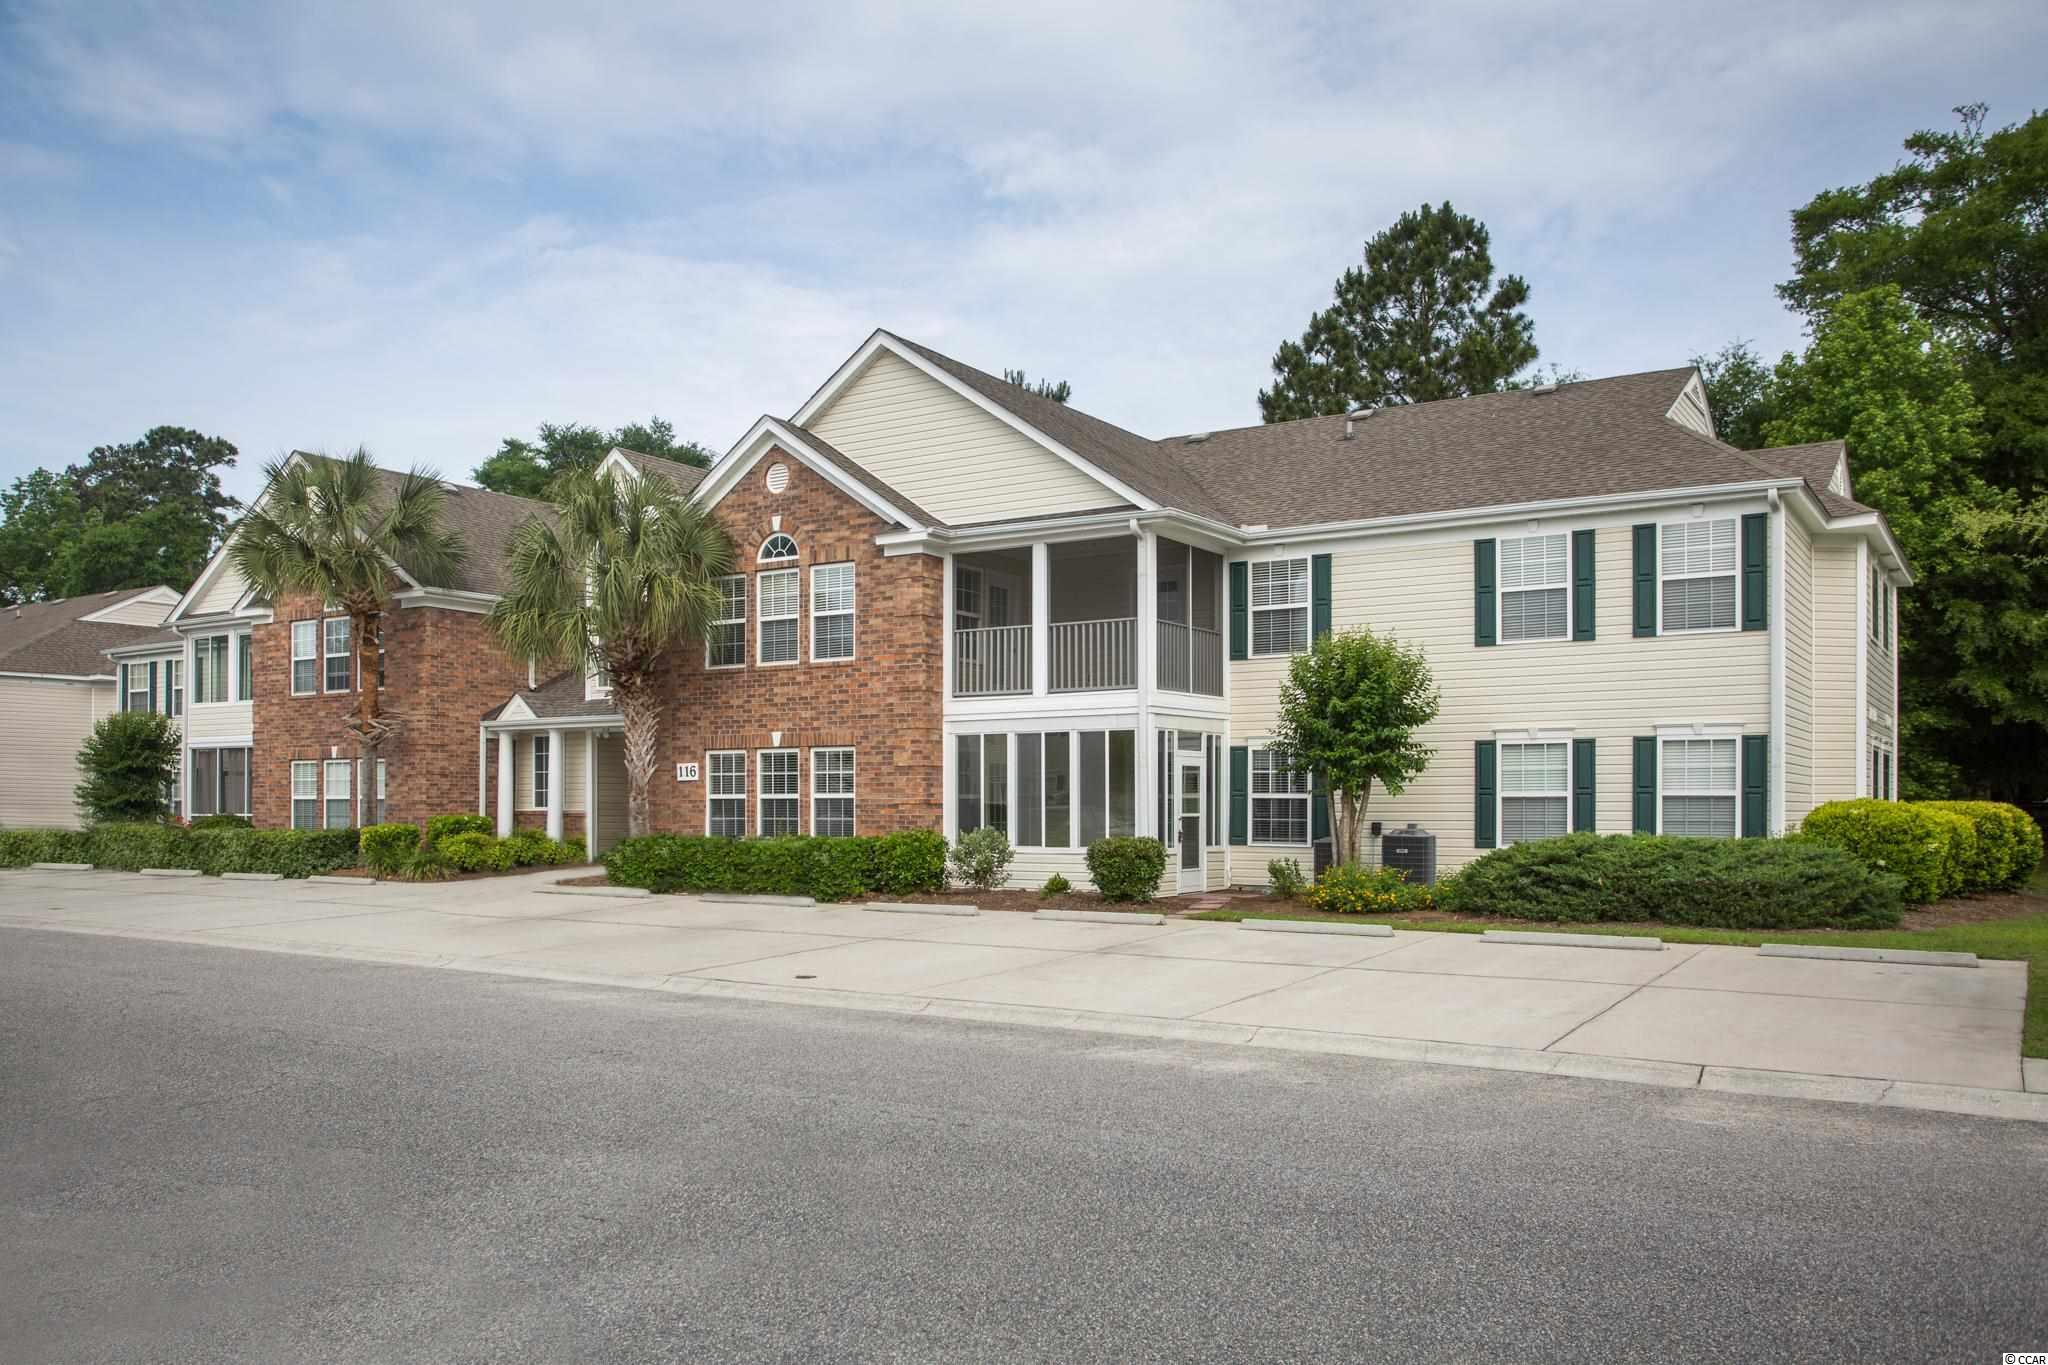 Spacious 3 Bedroom, 2 Bath condo in the popular Sterling Pointe community in Murrells Inlet.  Just 13 stairs up to this move-in ready second floor unit. Recently painted with new attractive vinyl plank flooring installed in the living areas, new living room fan, LED lights, kitchen faucet, stainless steel microwave, outdoor carpet and screening on porch.  Open floor plan with large family room with vaulted ceilings, windows bringing in lots of natural light and door leading to the screened porch.  Kitchen with breakfast bar and range, refrigerator and microwave.  Separate dining area adjacent to kitchen.  Spacious master bedroom with 2 closets and master bath with double sinks, garden tub, walk-in shower and linen closet.  Two good sized guest bedrooms, one with door leading to screened porch.  Guest bath with shower/tub and laundry room.  There is an extra room which can be used as an office, storage, craft or playroom.  Large screened porch will be great for starting your day or enjoying those evening breezes.  Just a short walk to the community pool.  Make an appointment to see!  You will not be disappointed!  Sterling Pointe is conveniently located close to restaurants, shopping, various golf courses, Tidelands Waccamaw Community Hospital, the Murrells Inlet Marsh Walk, the sandy beaches at Huntington State Park , Brookgreen Gardens and Pawleys Island.   Measurements and square footage are not guaranteed. Buyer is responsible for verification.